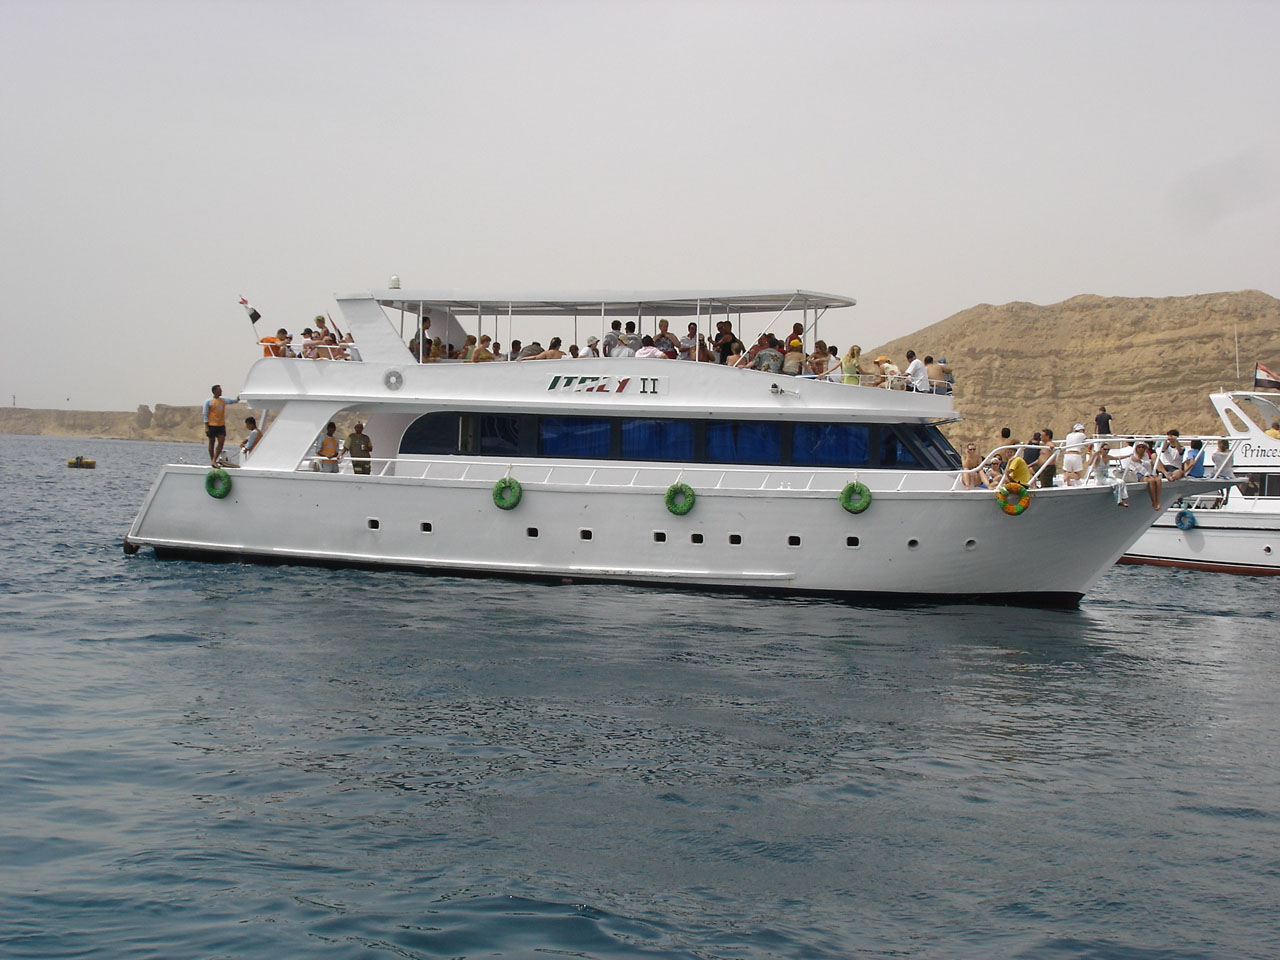 Boat trips from Sharm el Sheikh to Tiran island